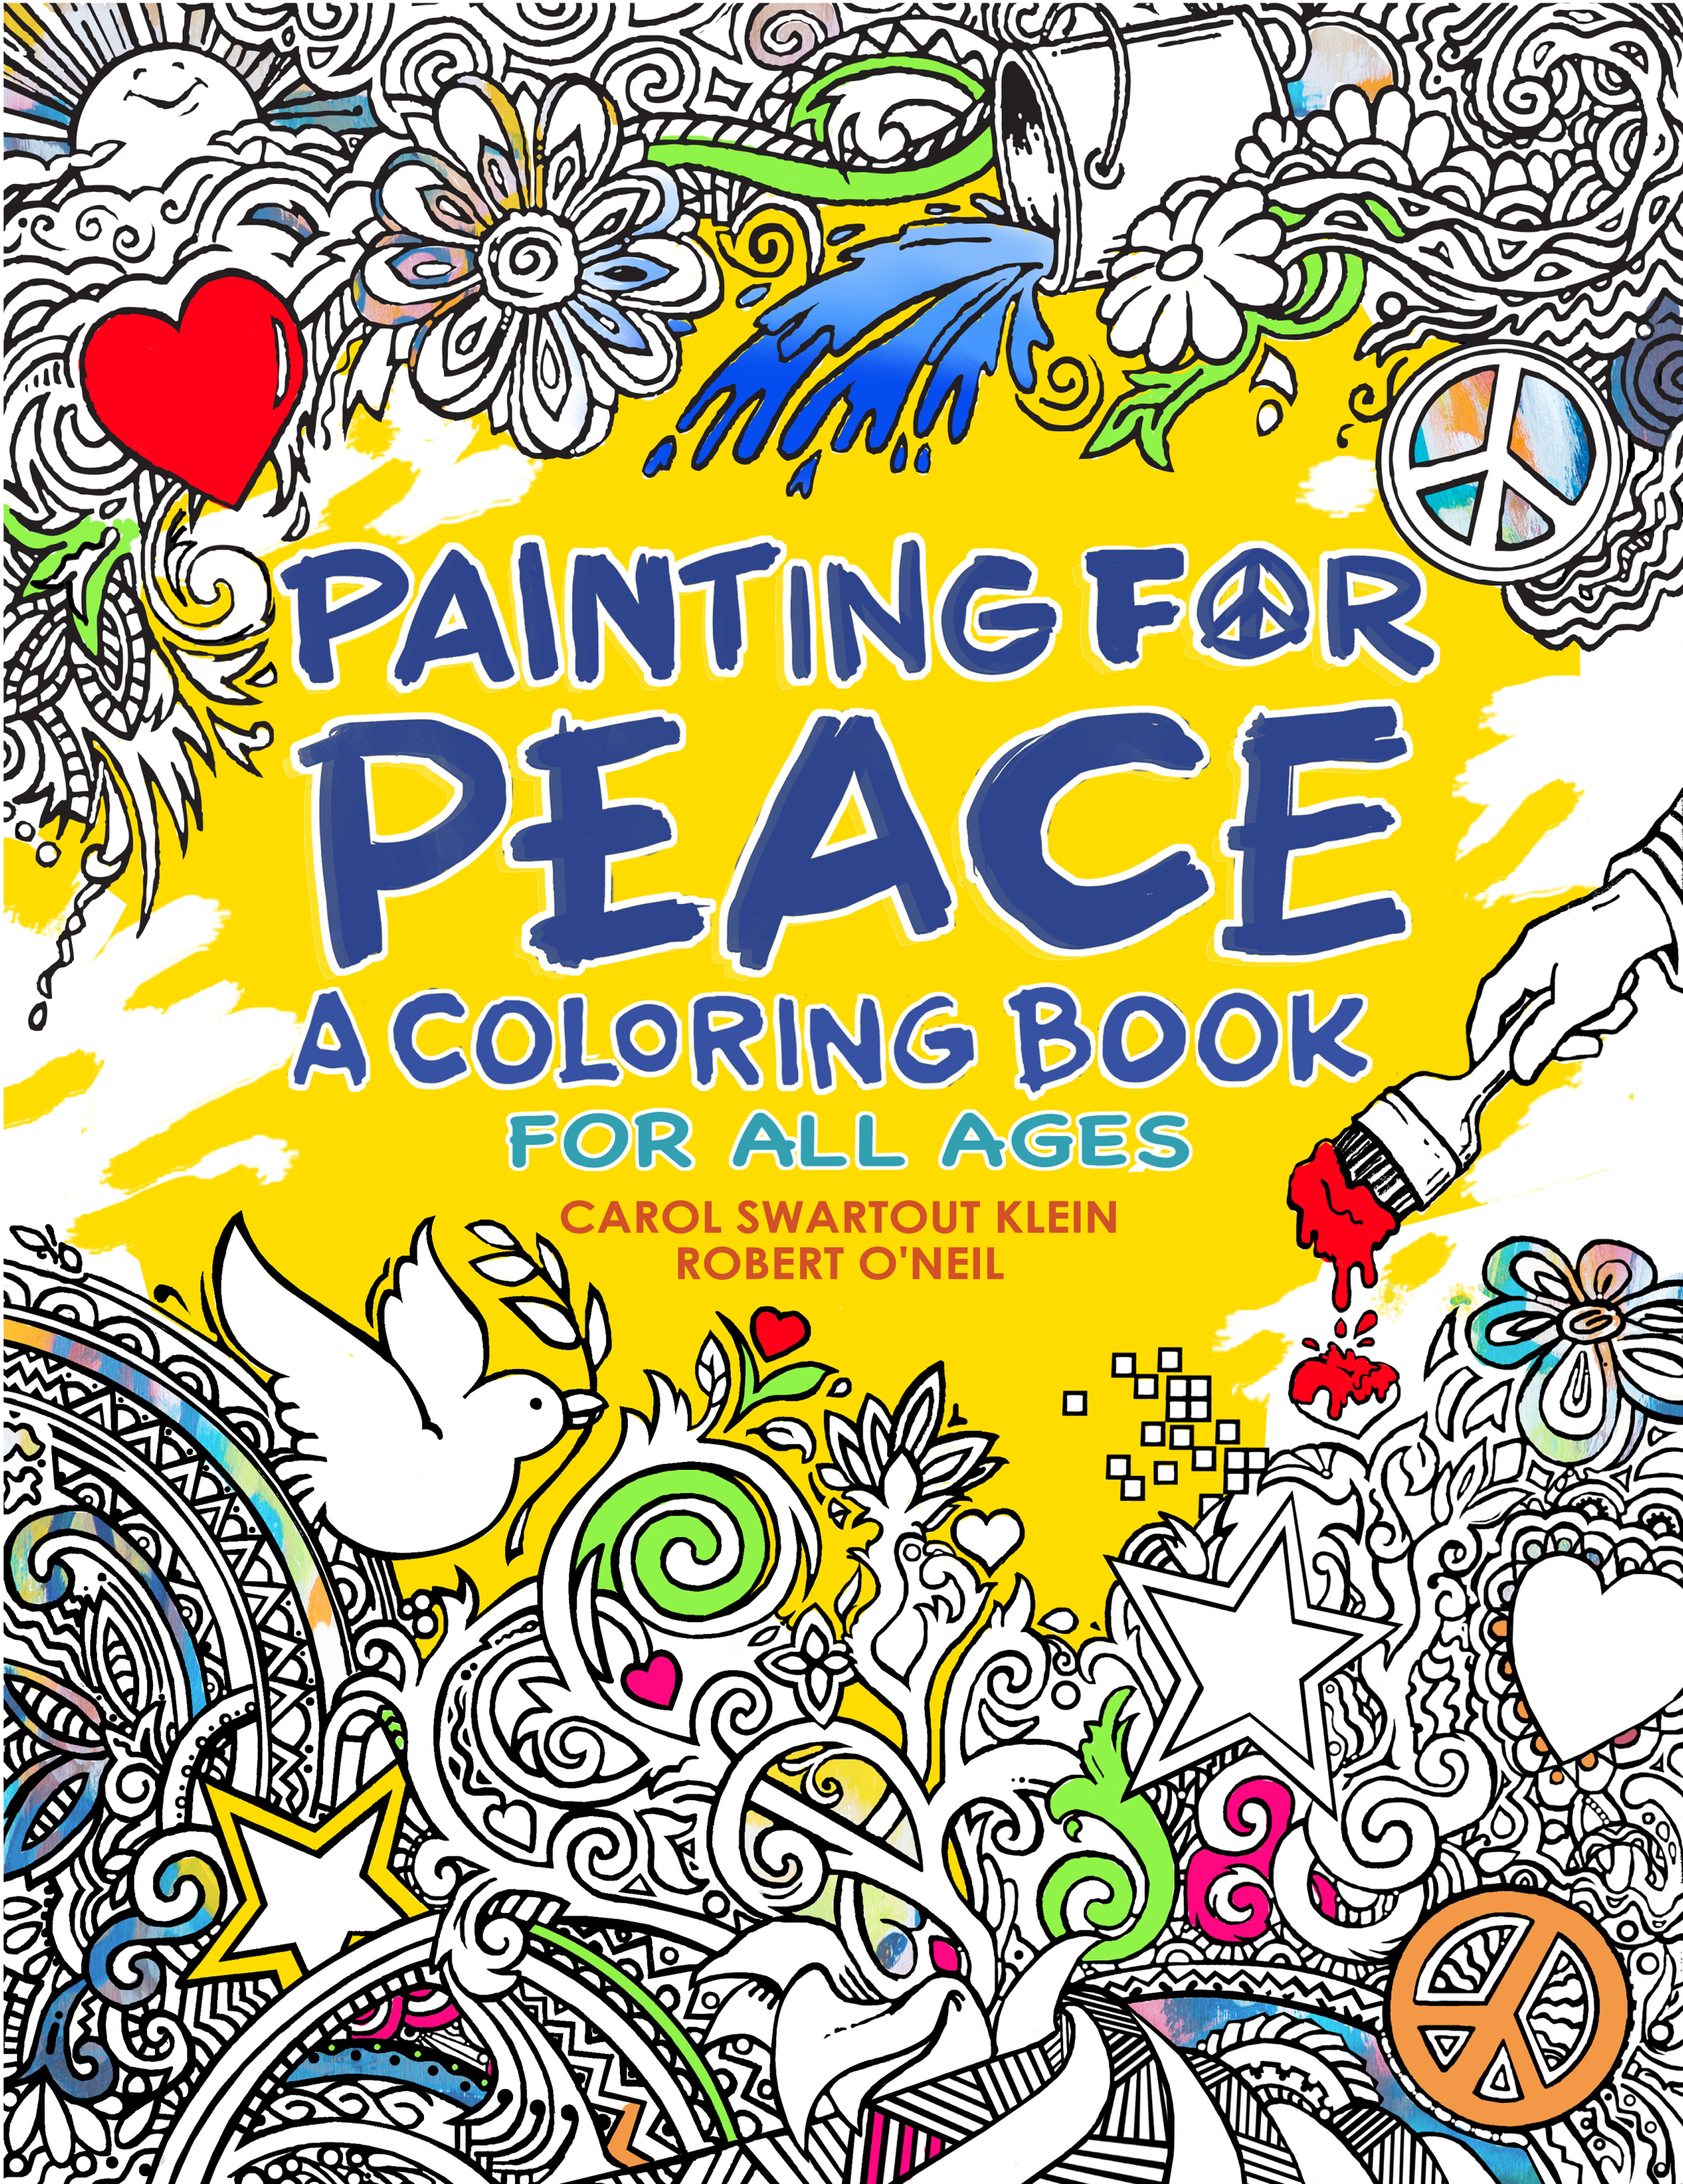 Swear word coloring book chapters - Coloring Books For Adults At Chapters Preorder The Book Now We Are Thrilled To Announce Download Image Swear Word